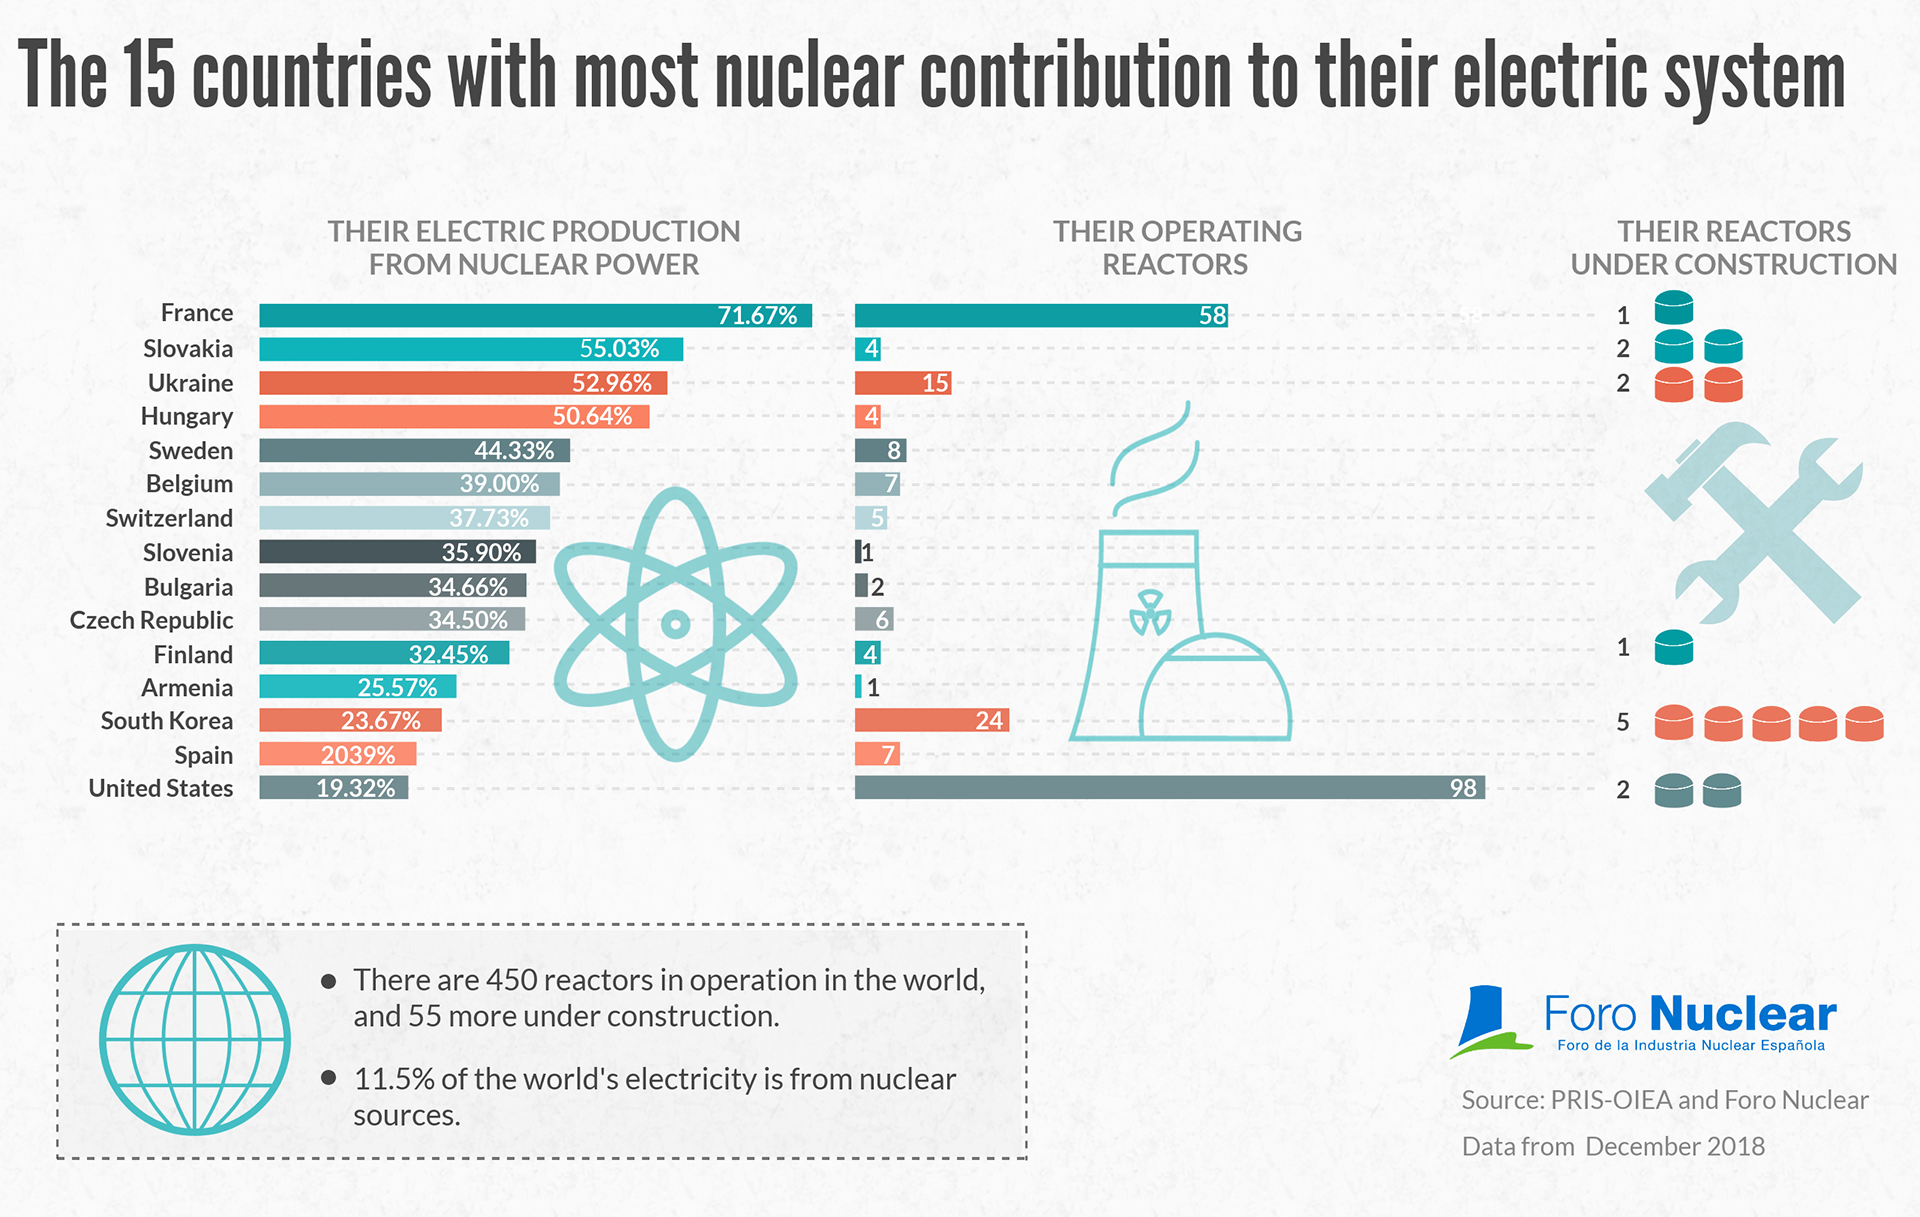 The 15 countries with most nuclear contribution to their electric systems